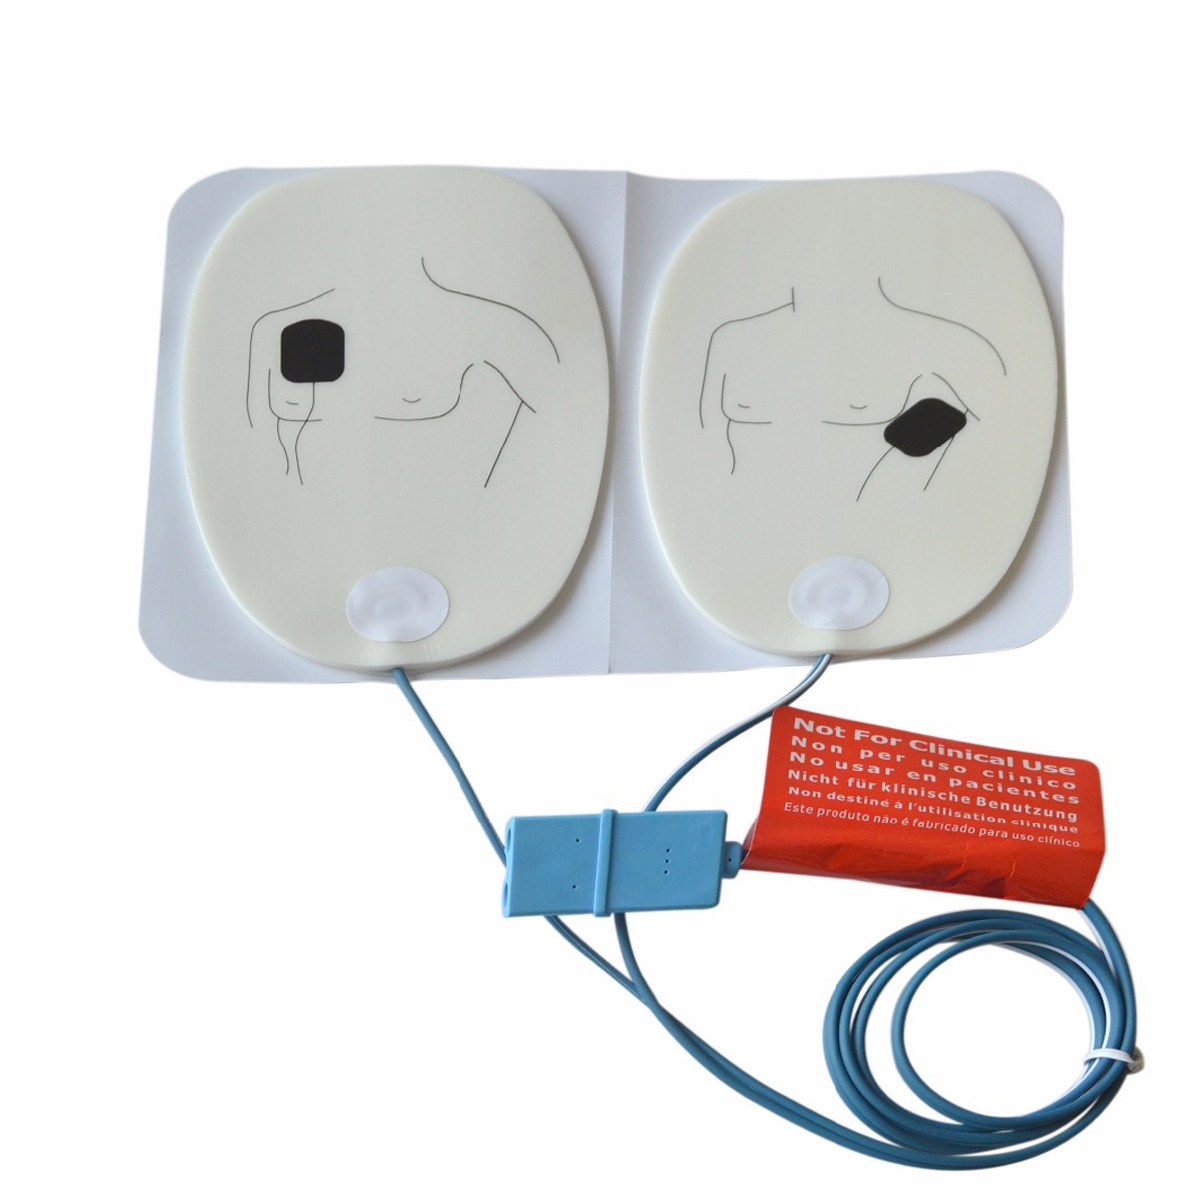 5Pairs AED Training Electrodes ECG Defibrillation Electrode Pad Use With AED Machine For Emergency Skills Training 5pairs aed training electrodes ecg defibrillation electrode pad use with aed machine for emergency skills training